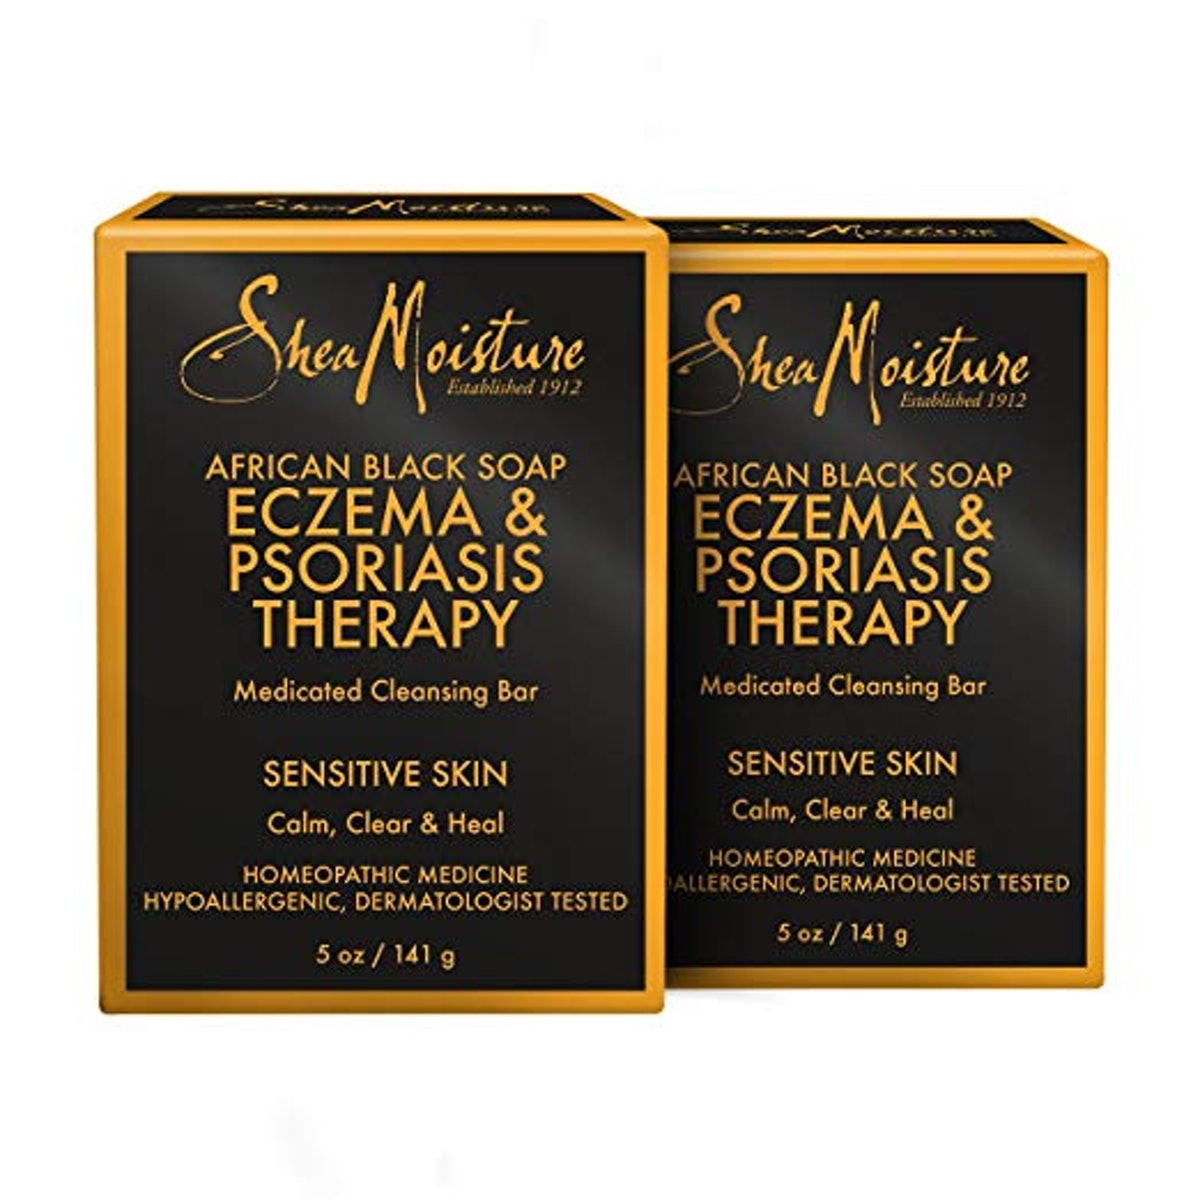 Shea Moisture African Black Soap Eczema & Psoriasis Therapy (2-Pack)